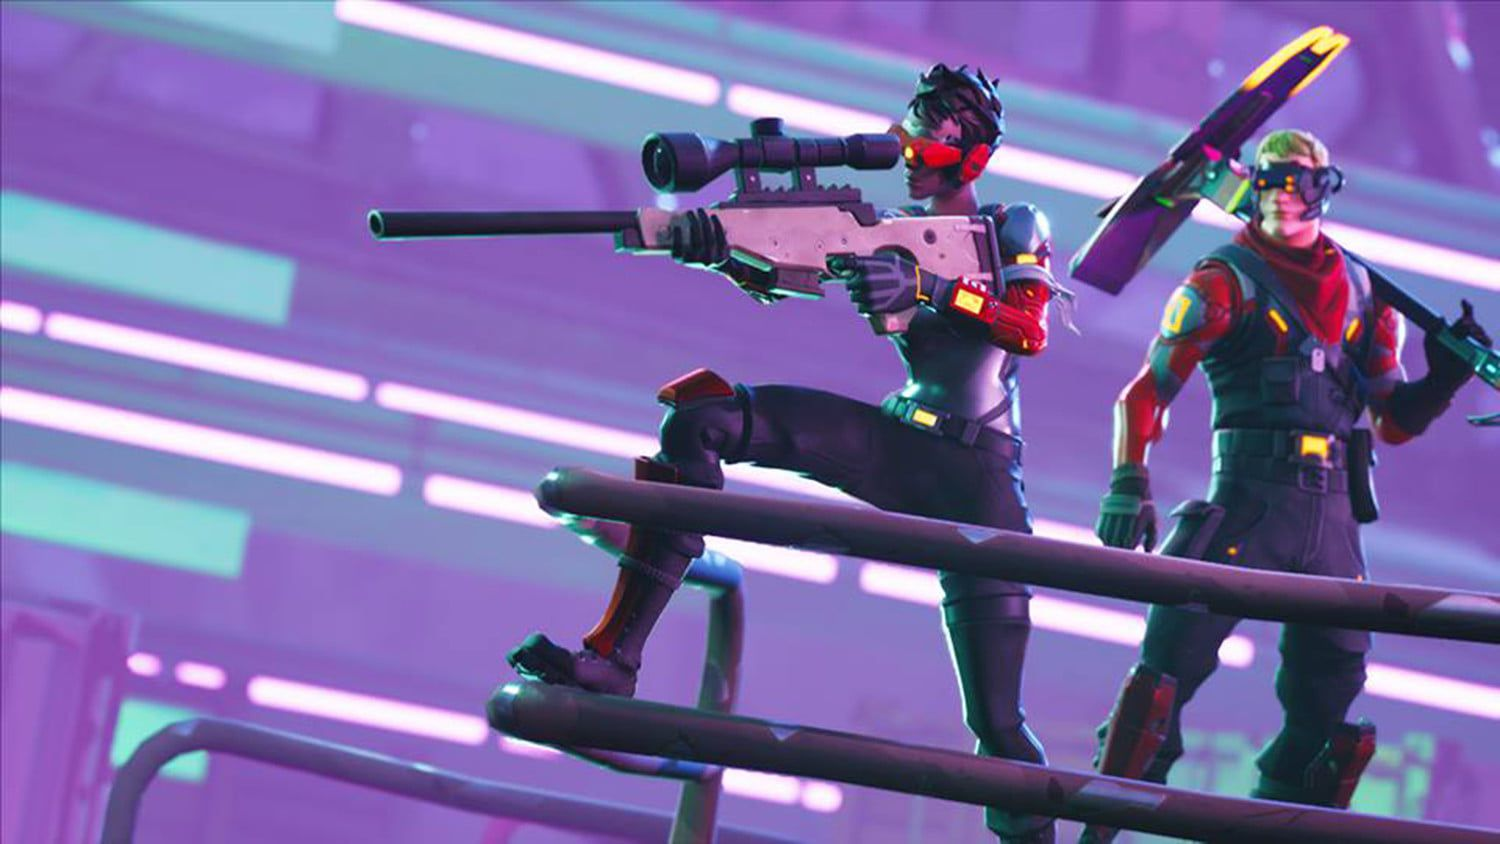 epic games will invest 100 million dollars in the 2018 2019 competitive arena - fortnite 100 million